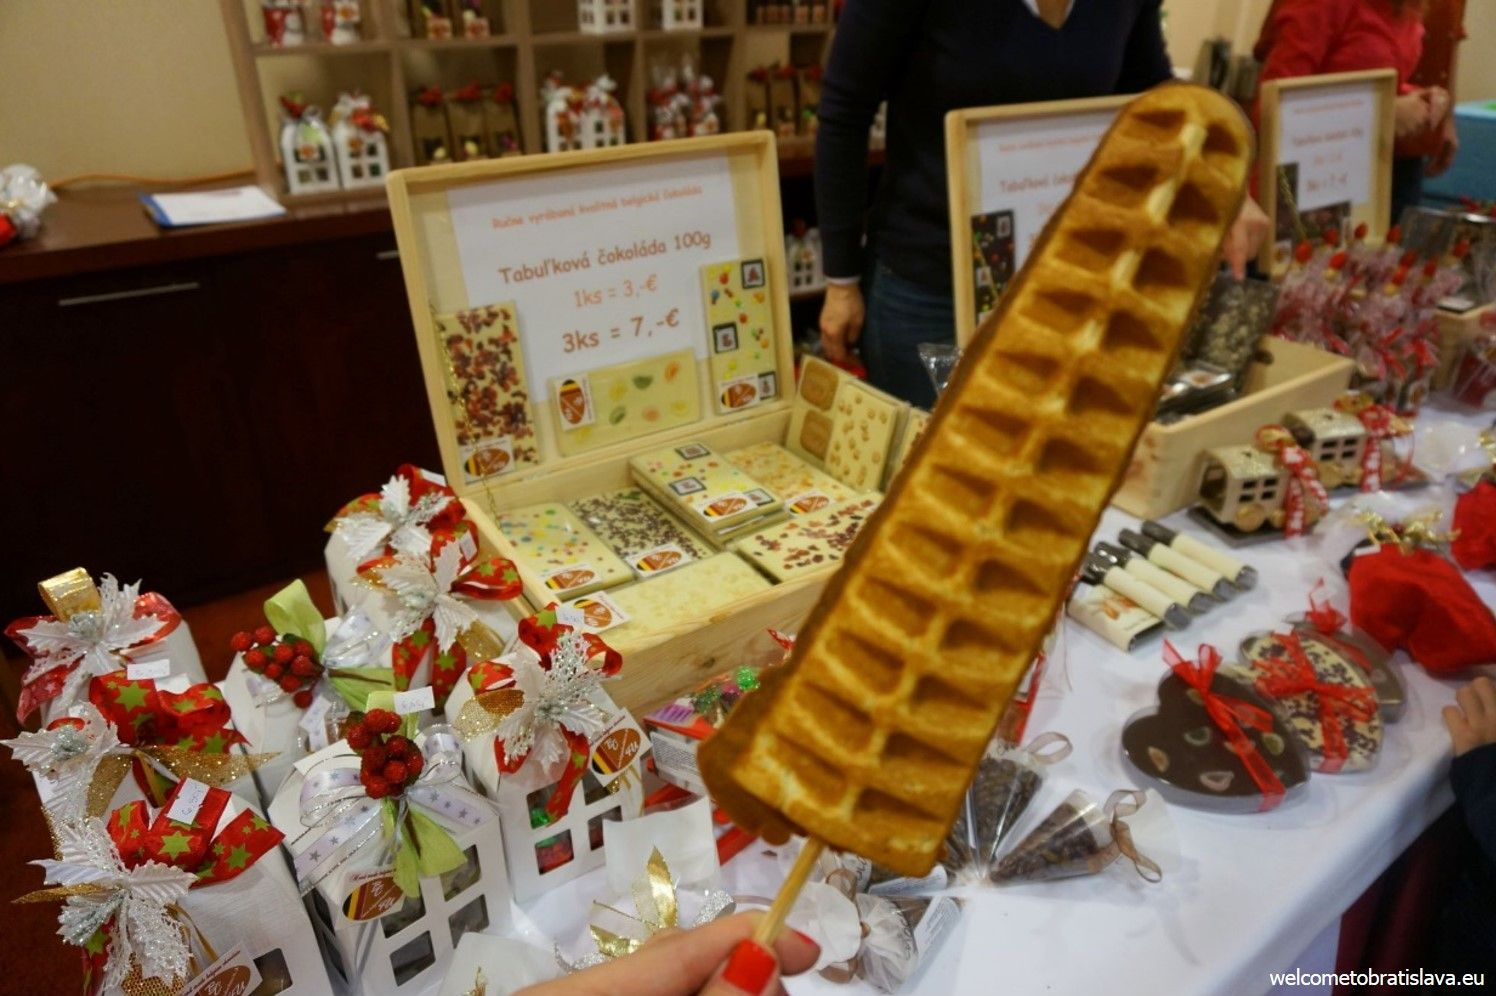 If you buy any of these thematic gifts at the stand in the back saloon, you get a huge waffle for free as a bonus :)